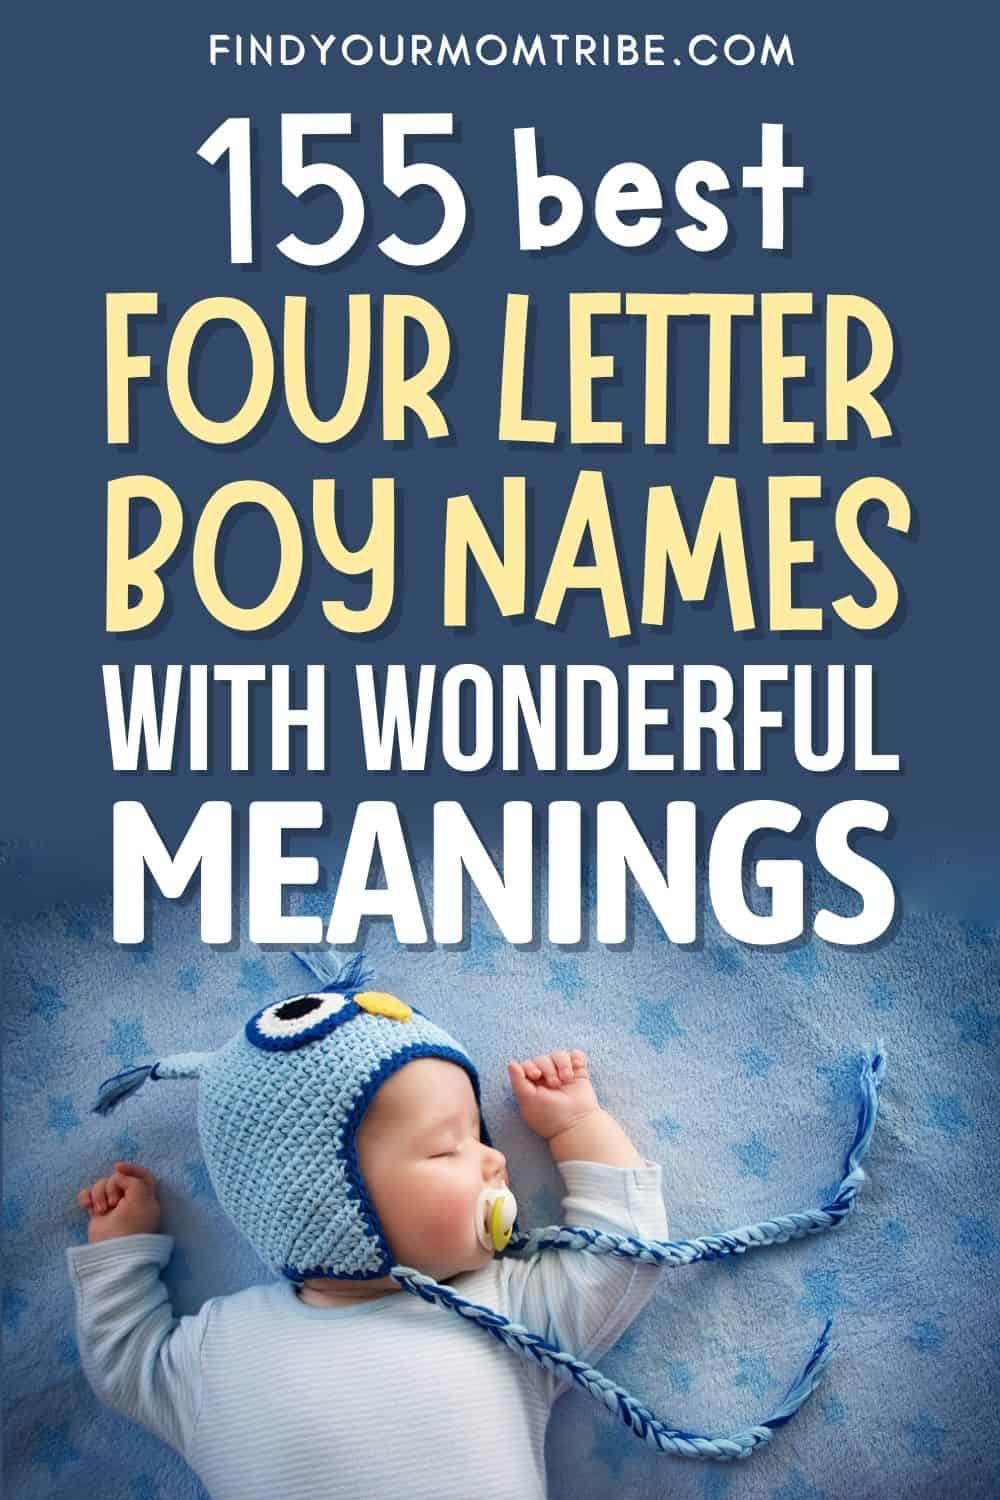 Best 4 Letter Boy Names With Wonderful Meanings Pinterest